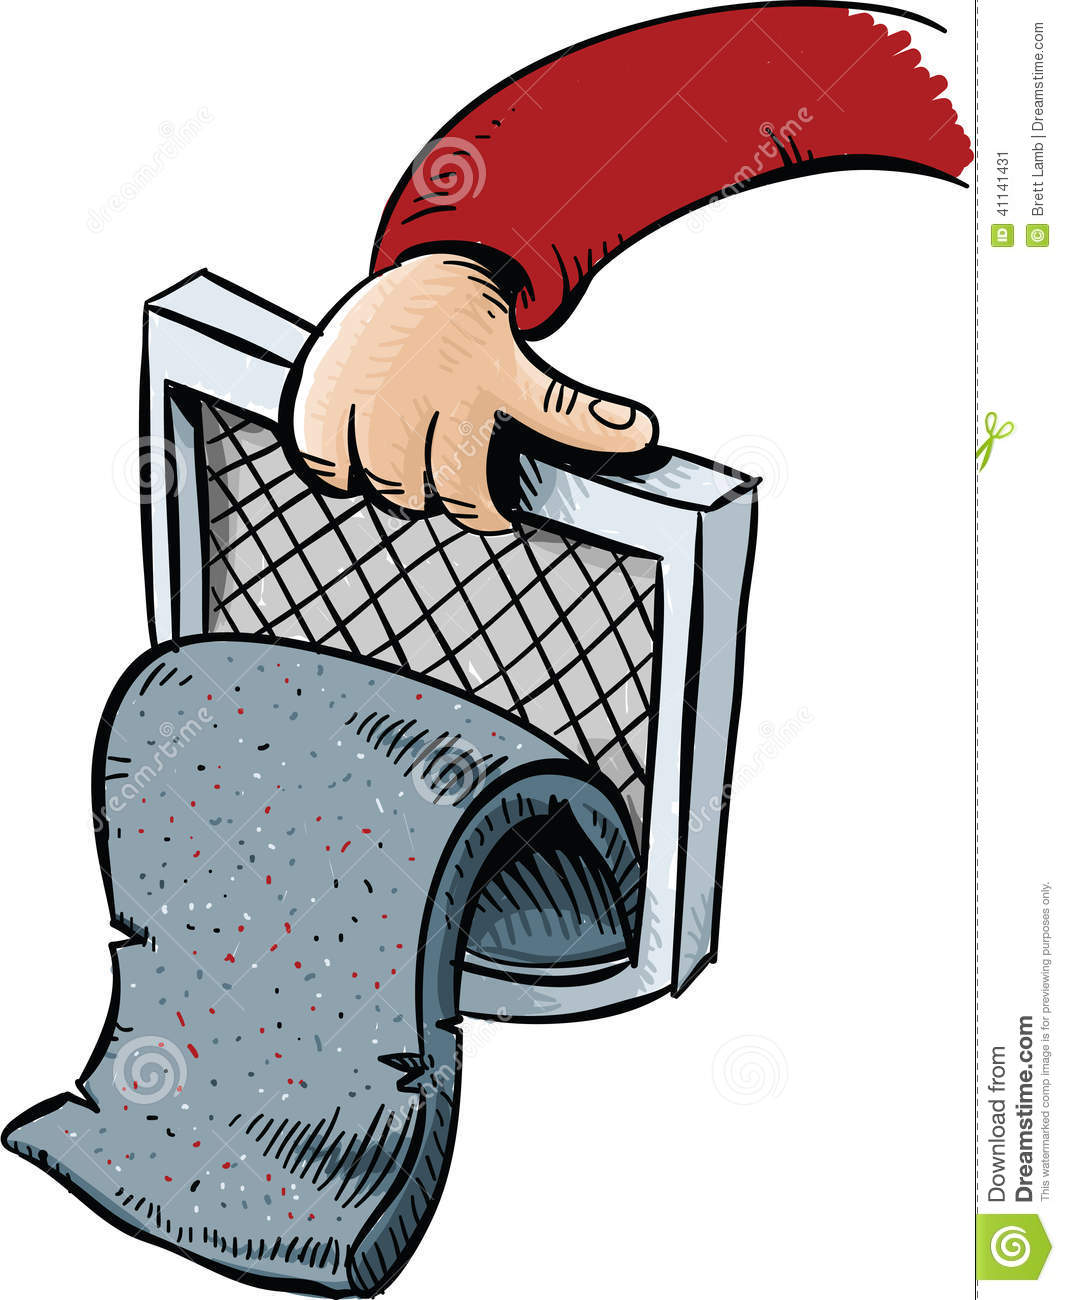 Clothes Dryer Clip Art ~ Lint trap stock illustration image